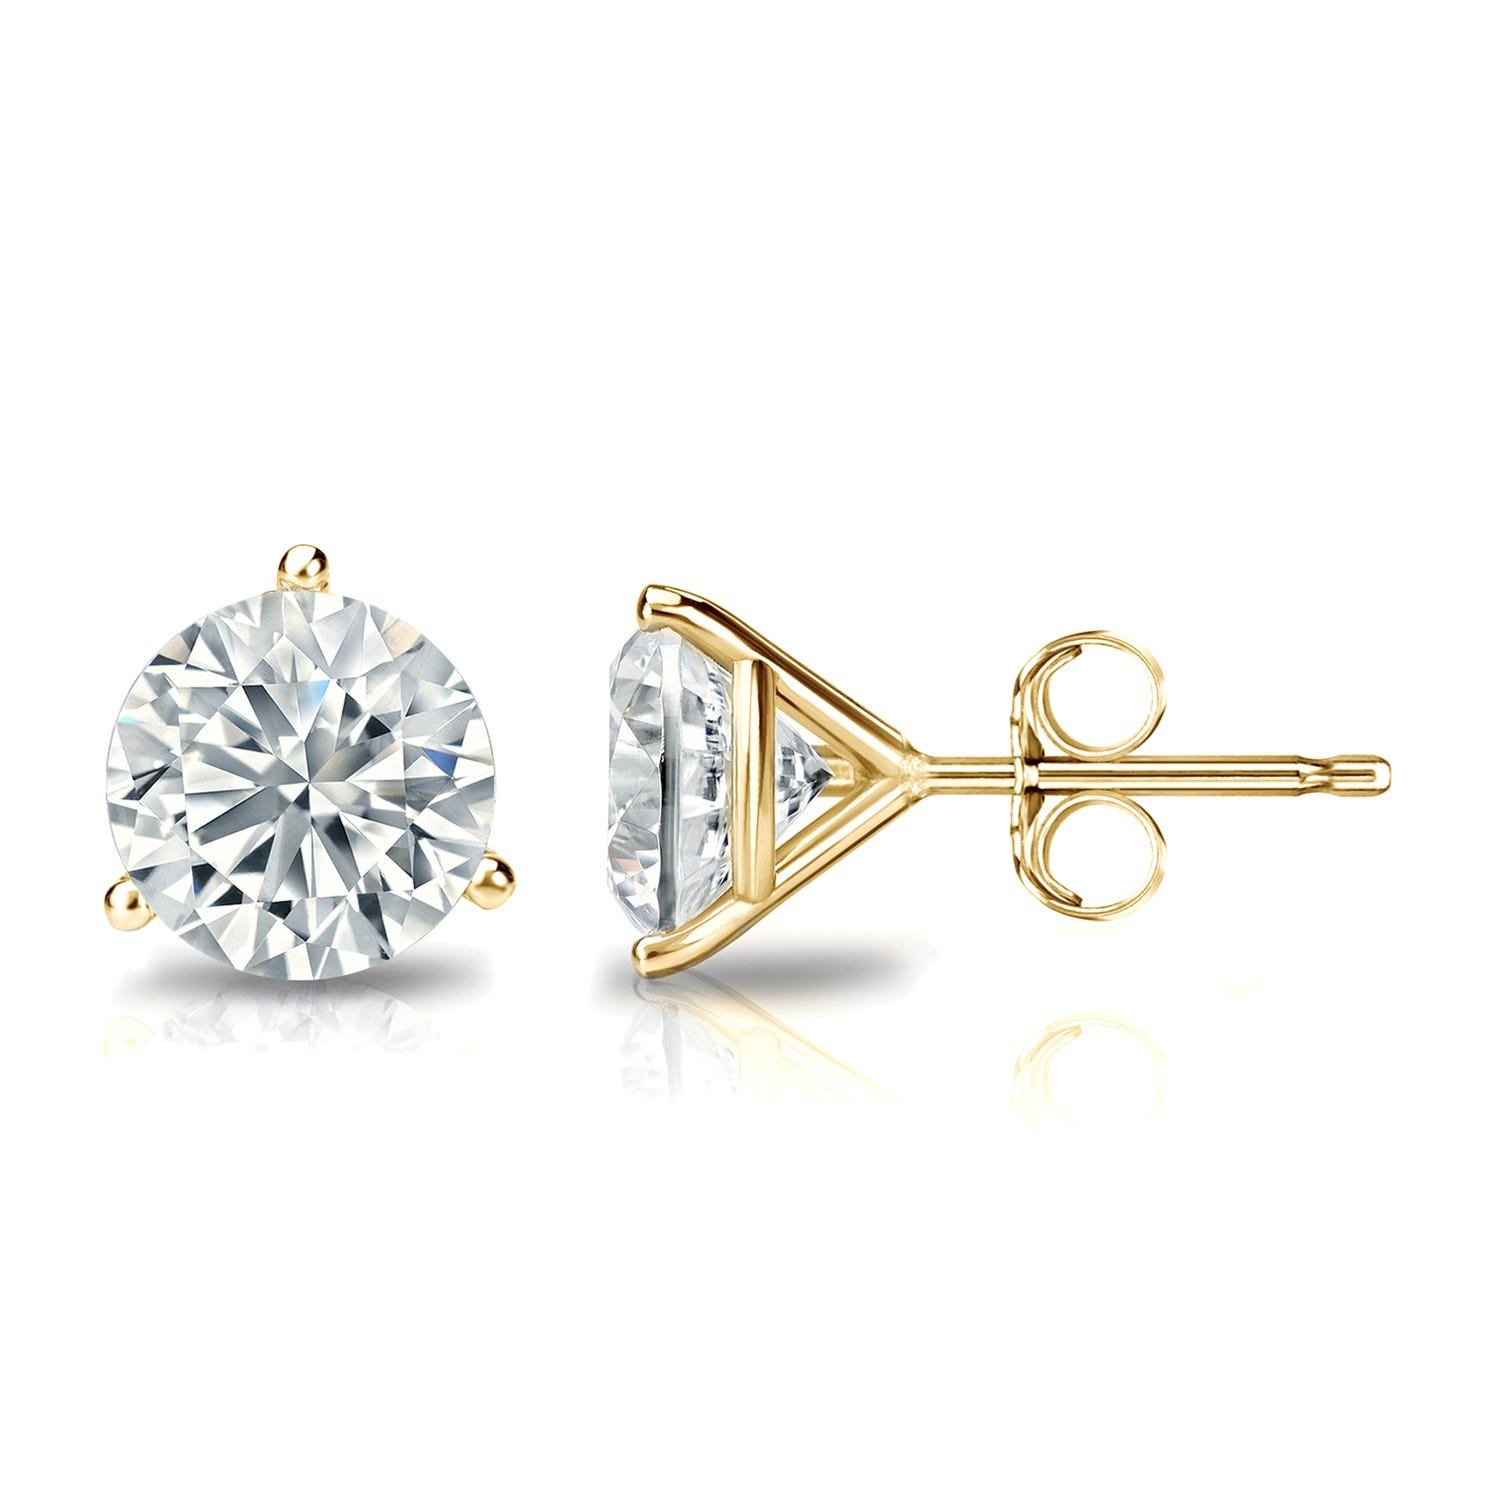 1-1/2 CTTW Round Diamond Solitaire Stud Earrings IJ SI1 in 18K Yellow Gold IGI Certified 3-Prong Setting